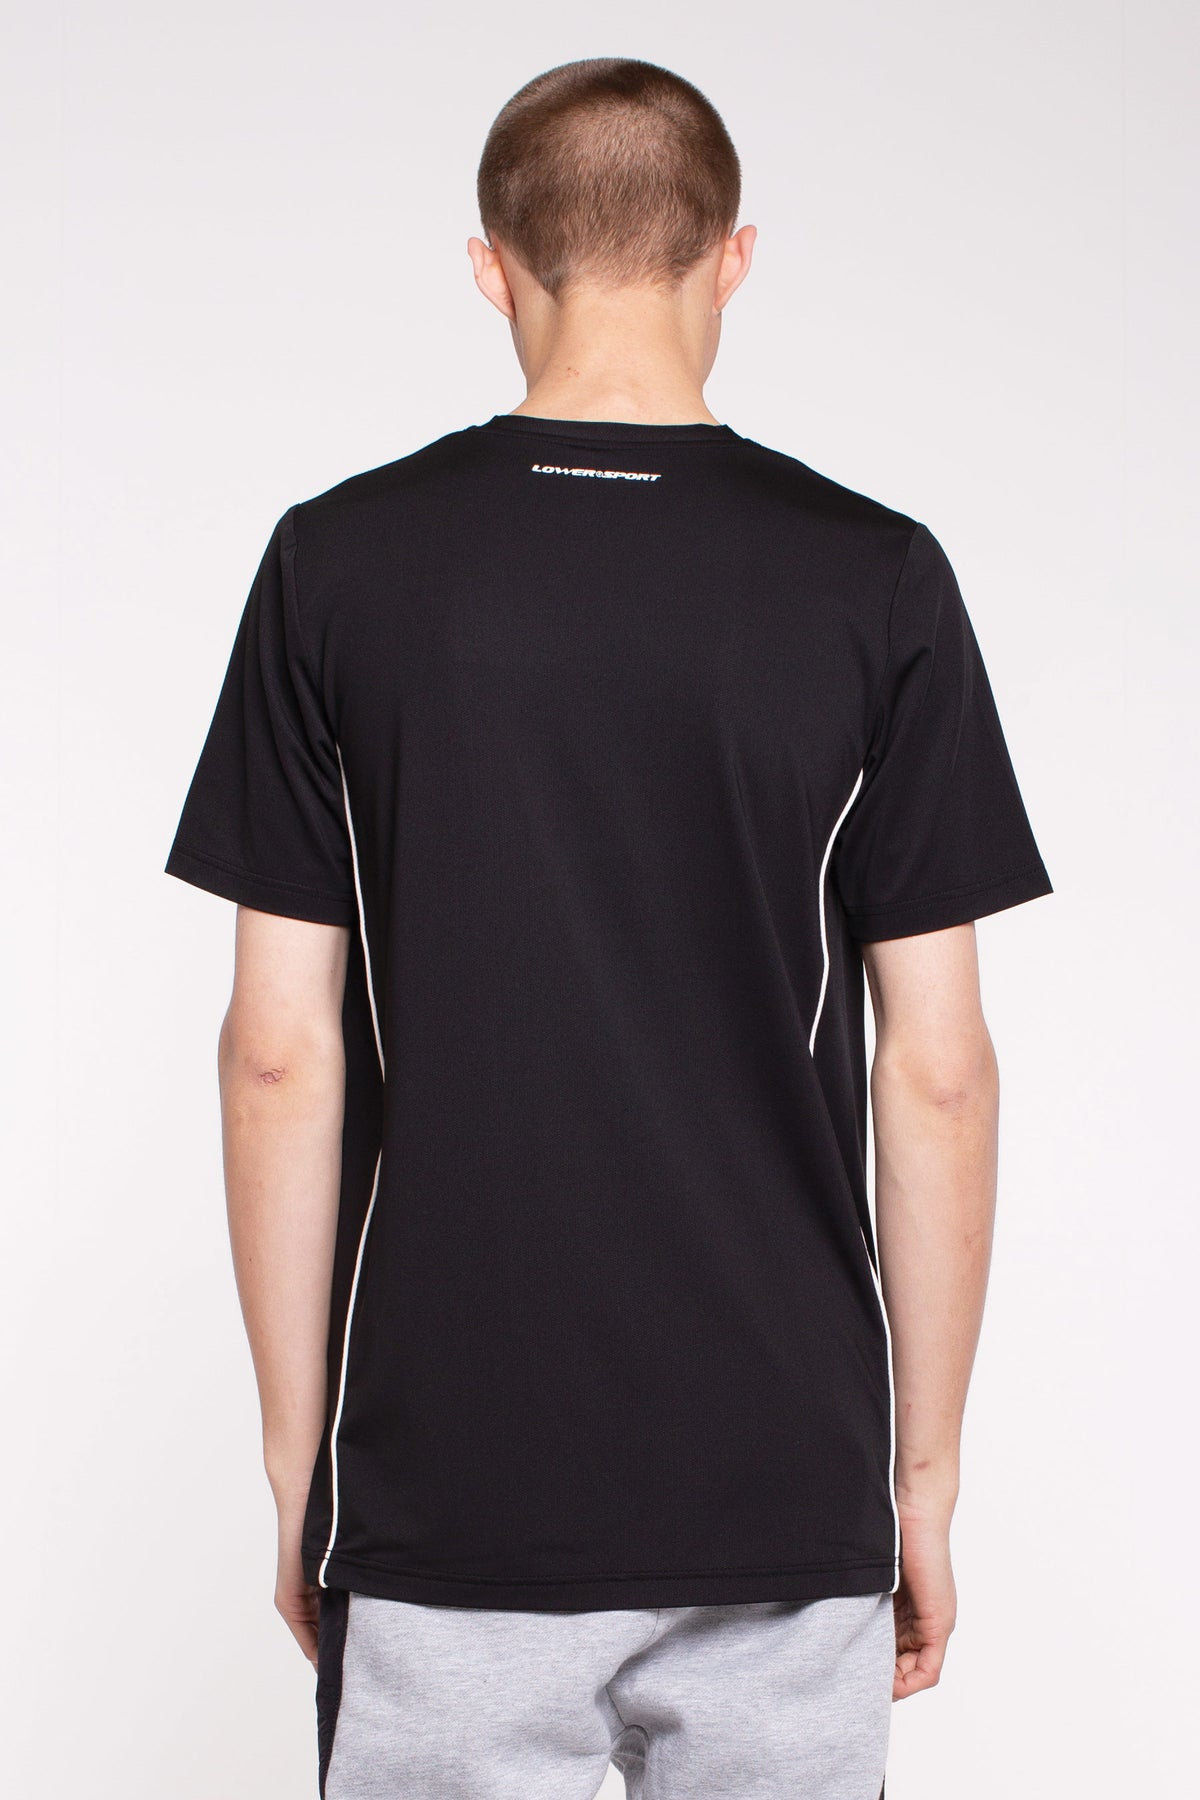 Hurdle Side Panel Tee - Black